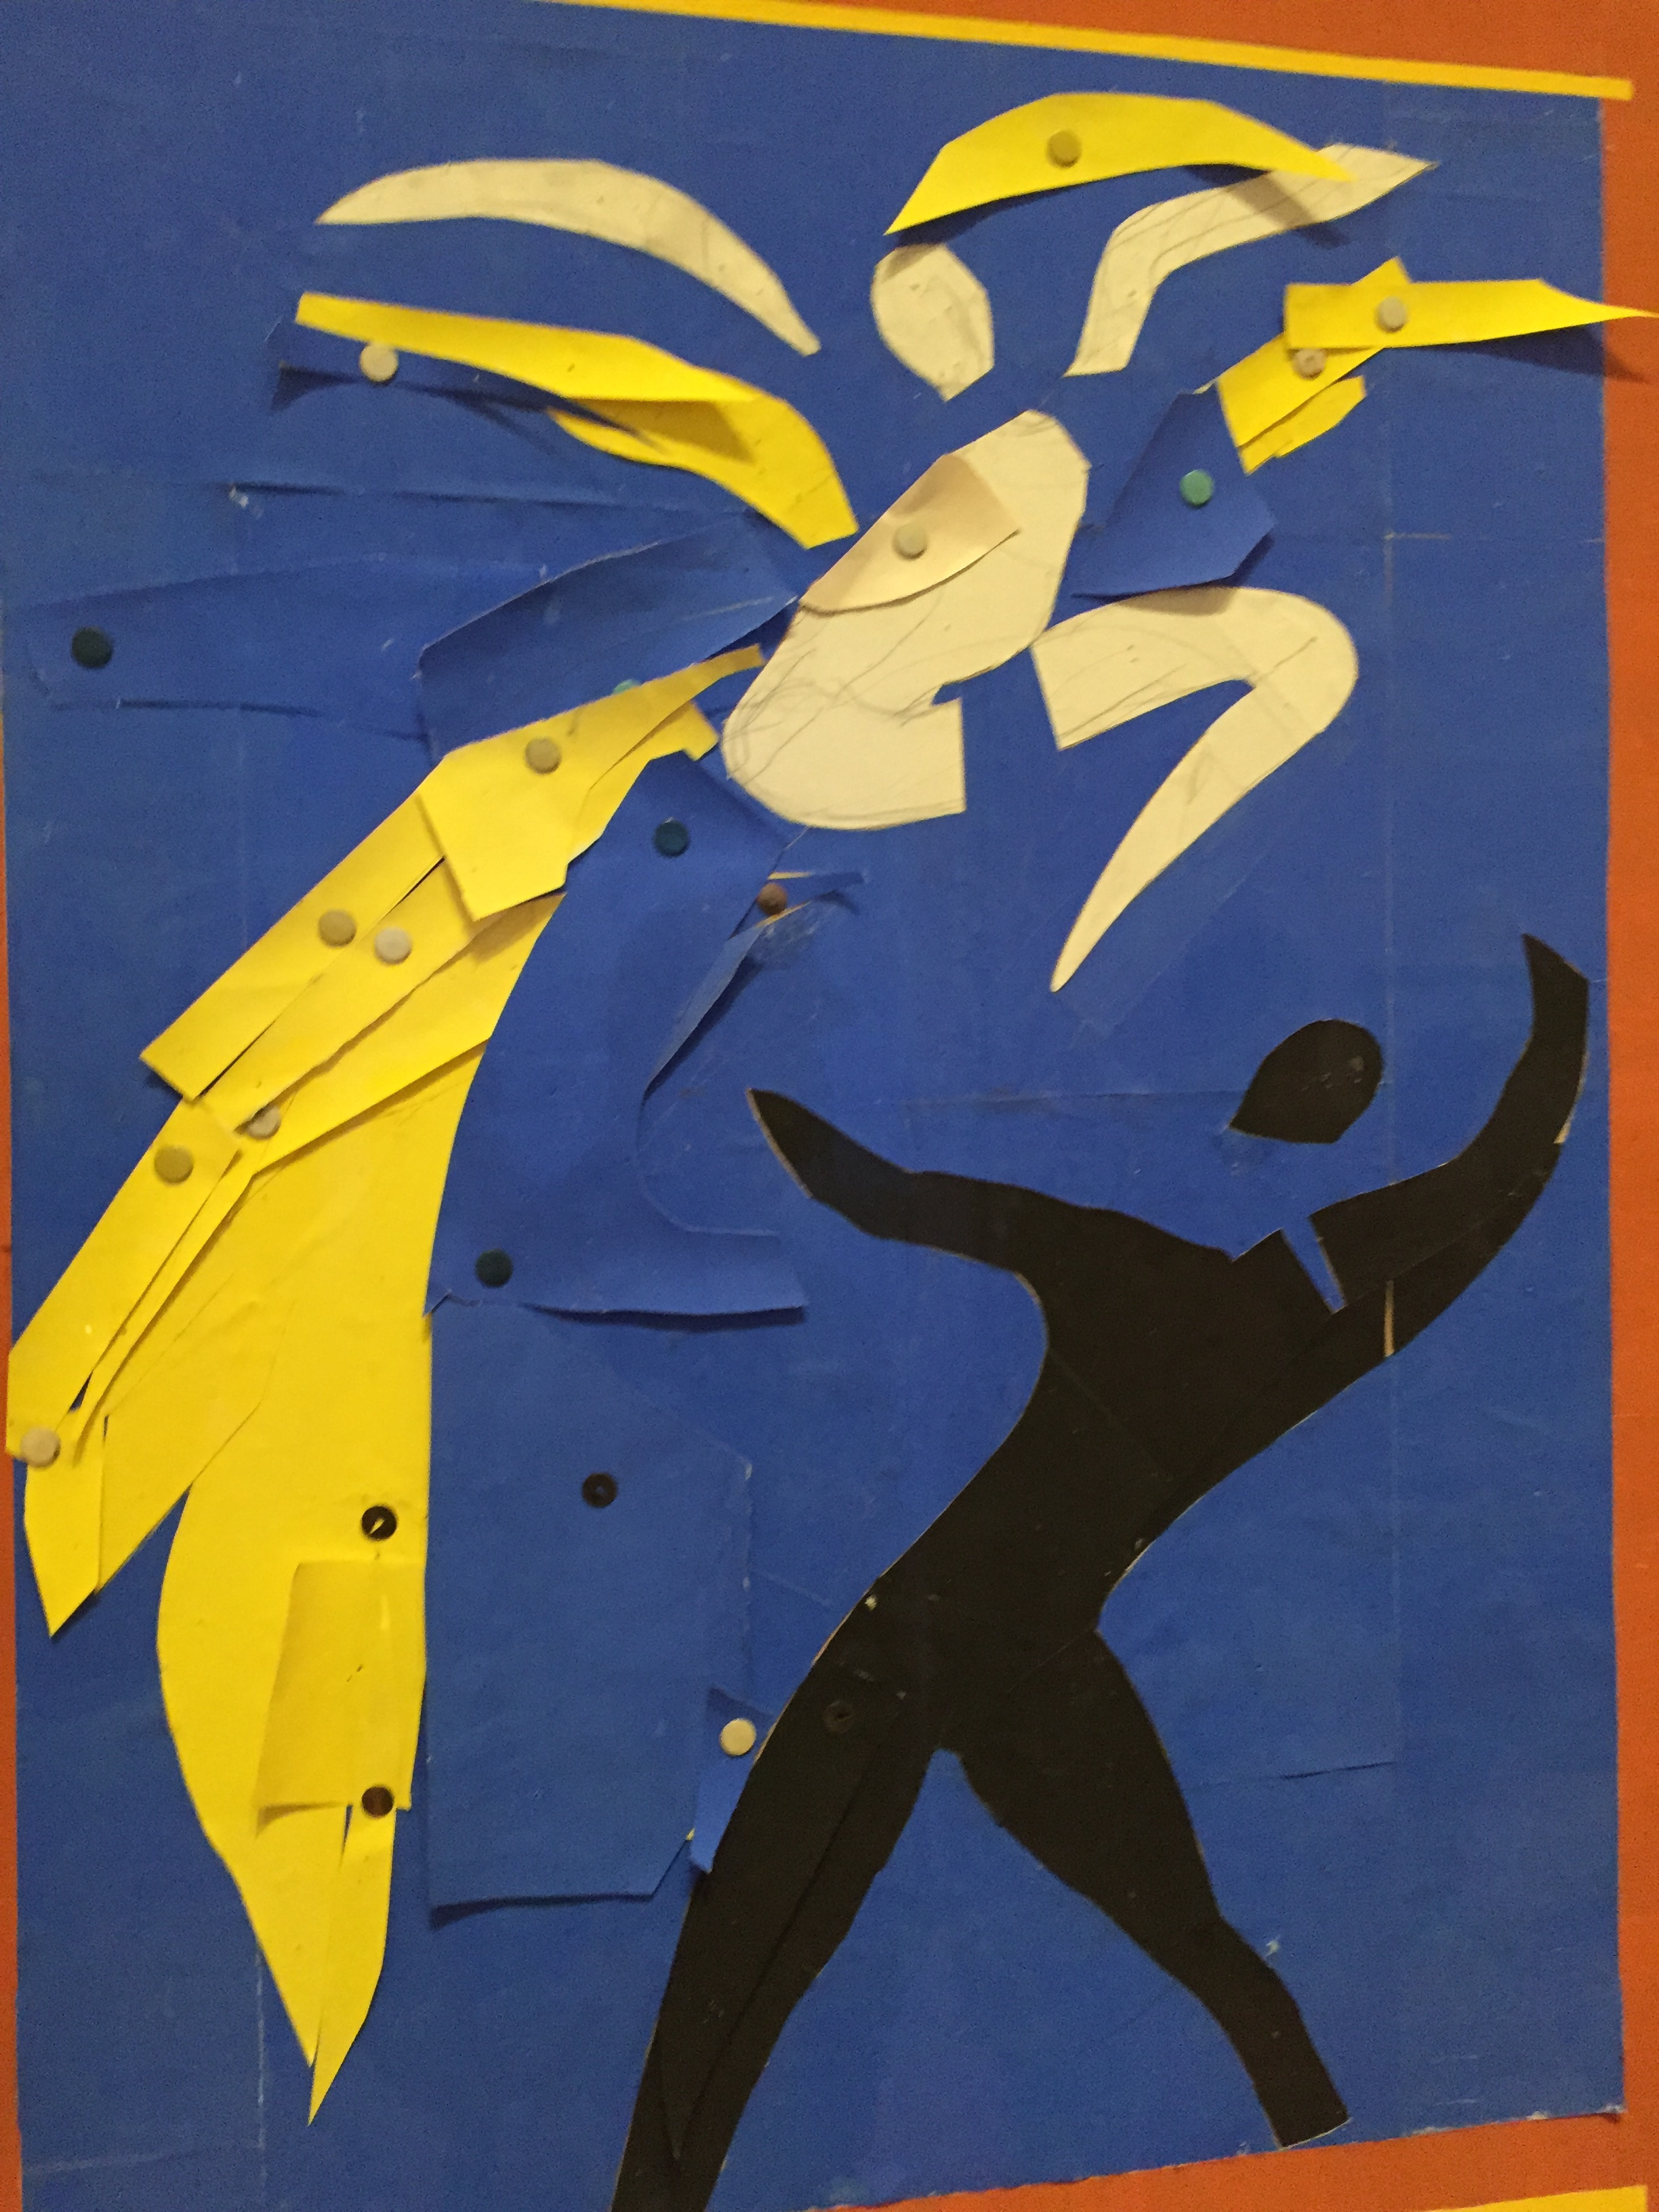 Henri Matisse Two Dancers (Deux Danseurs)  1937-38 Stage curtain design for Rouge et Noir Gouache on paper, cut and pasted, notebook papers, pencil, and thumbtacks (partial image)